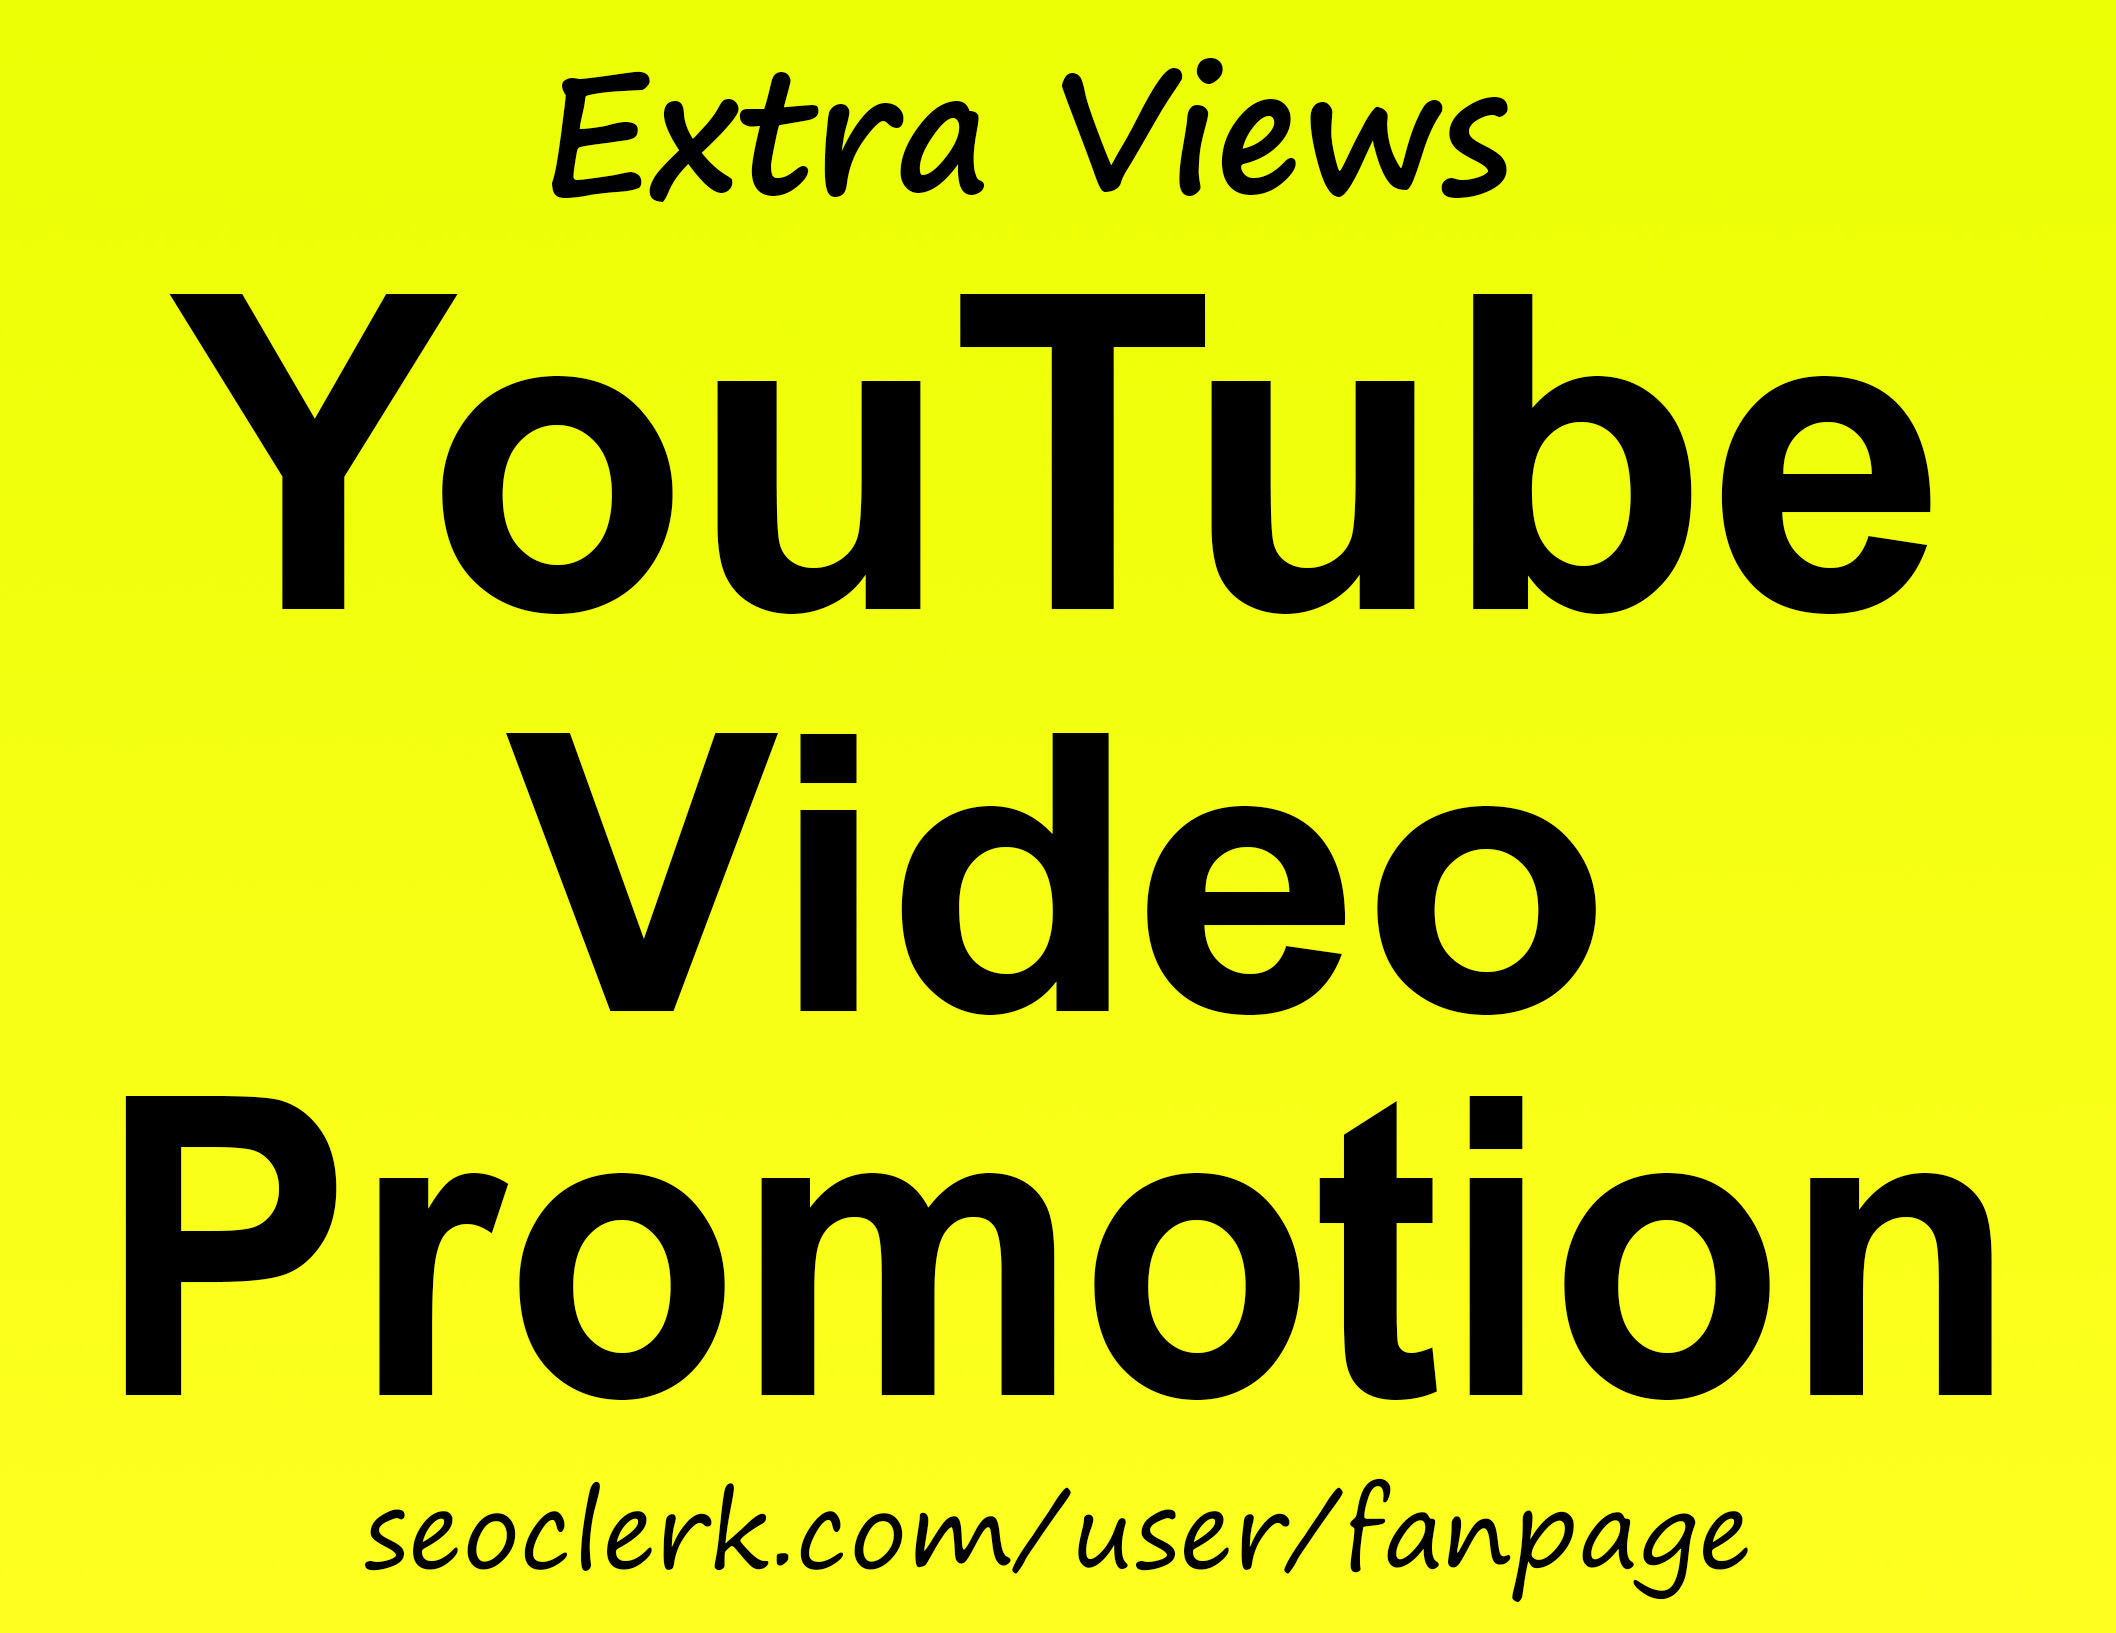 YouTube Video Promotion and Marketing Best For Ranking